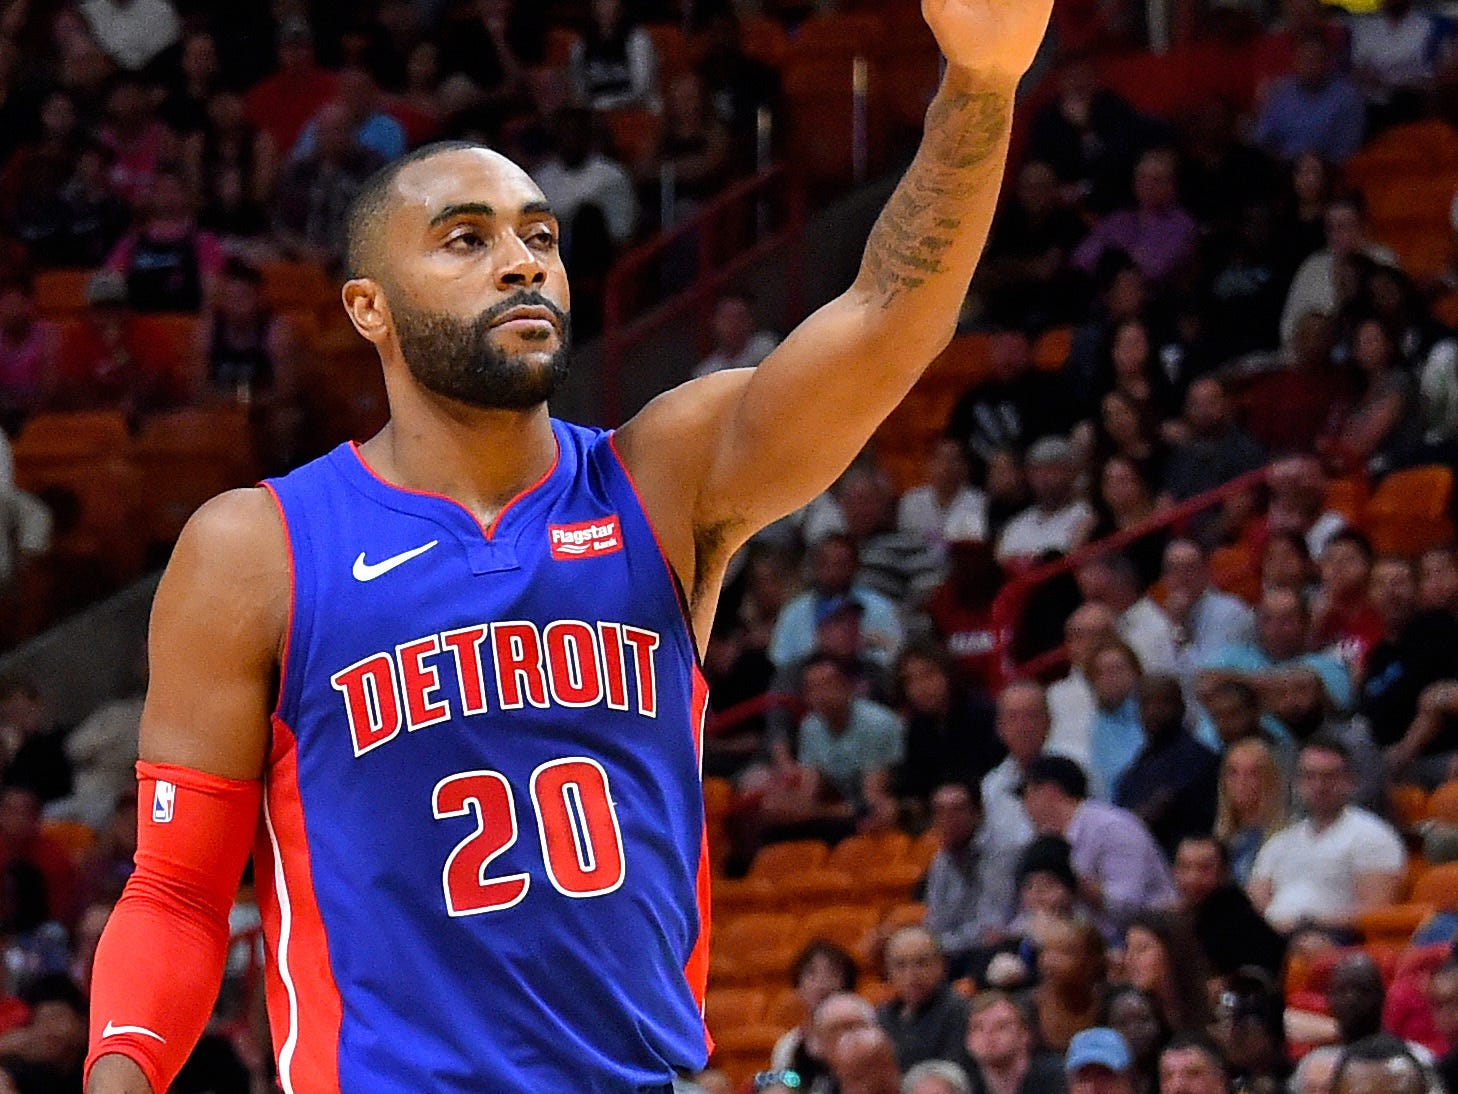 Detroit Pistons guard Wayne Ellington (20) waves to the crowd during the first half against the Detroit Pistons at American Airlines Arena on March 13, 2019.